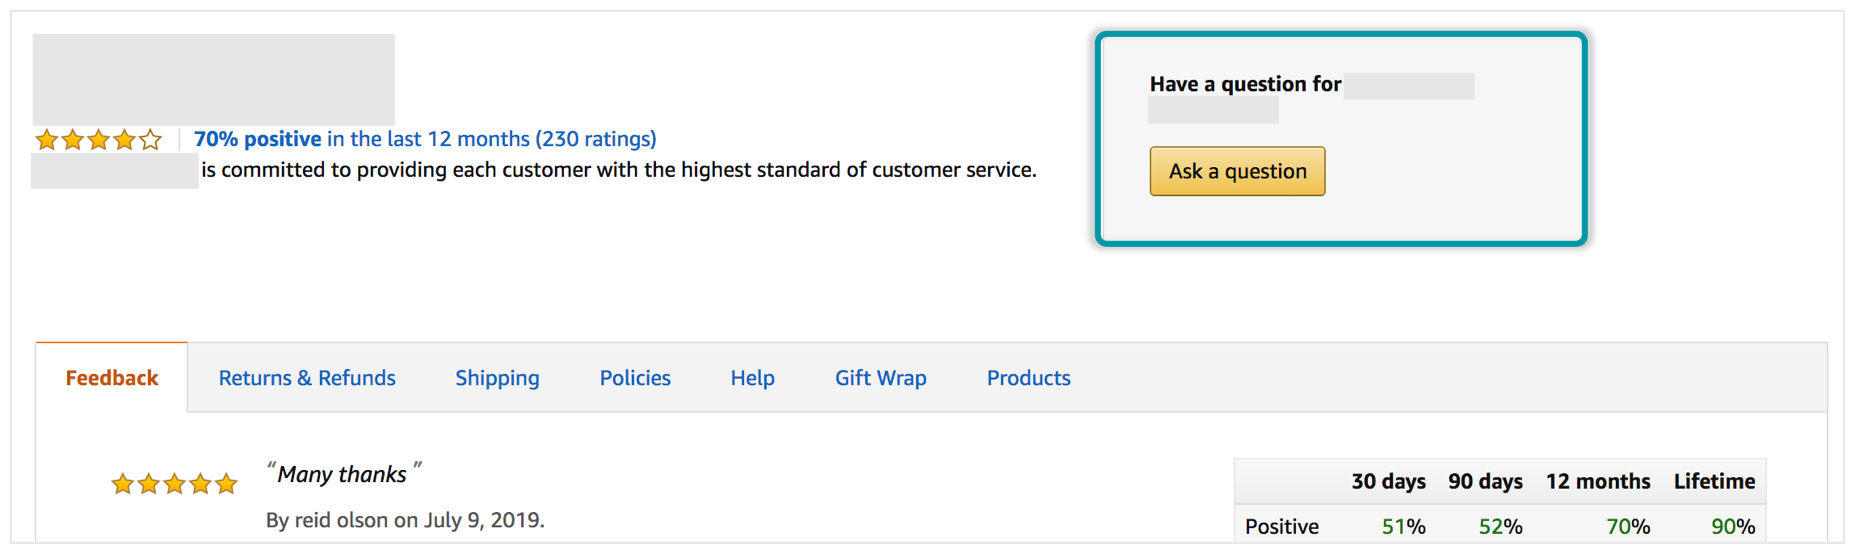 example of a link to contact an amazon seller